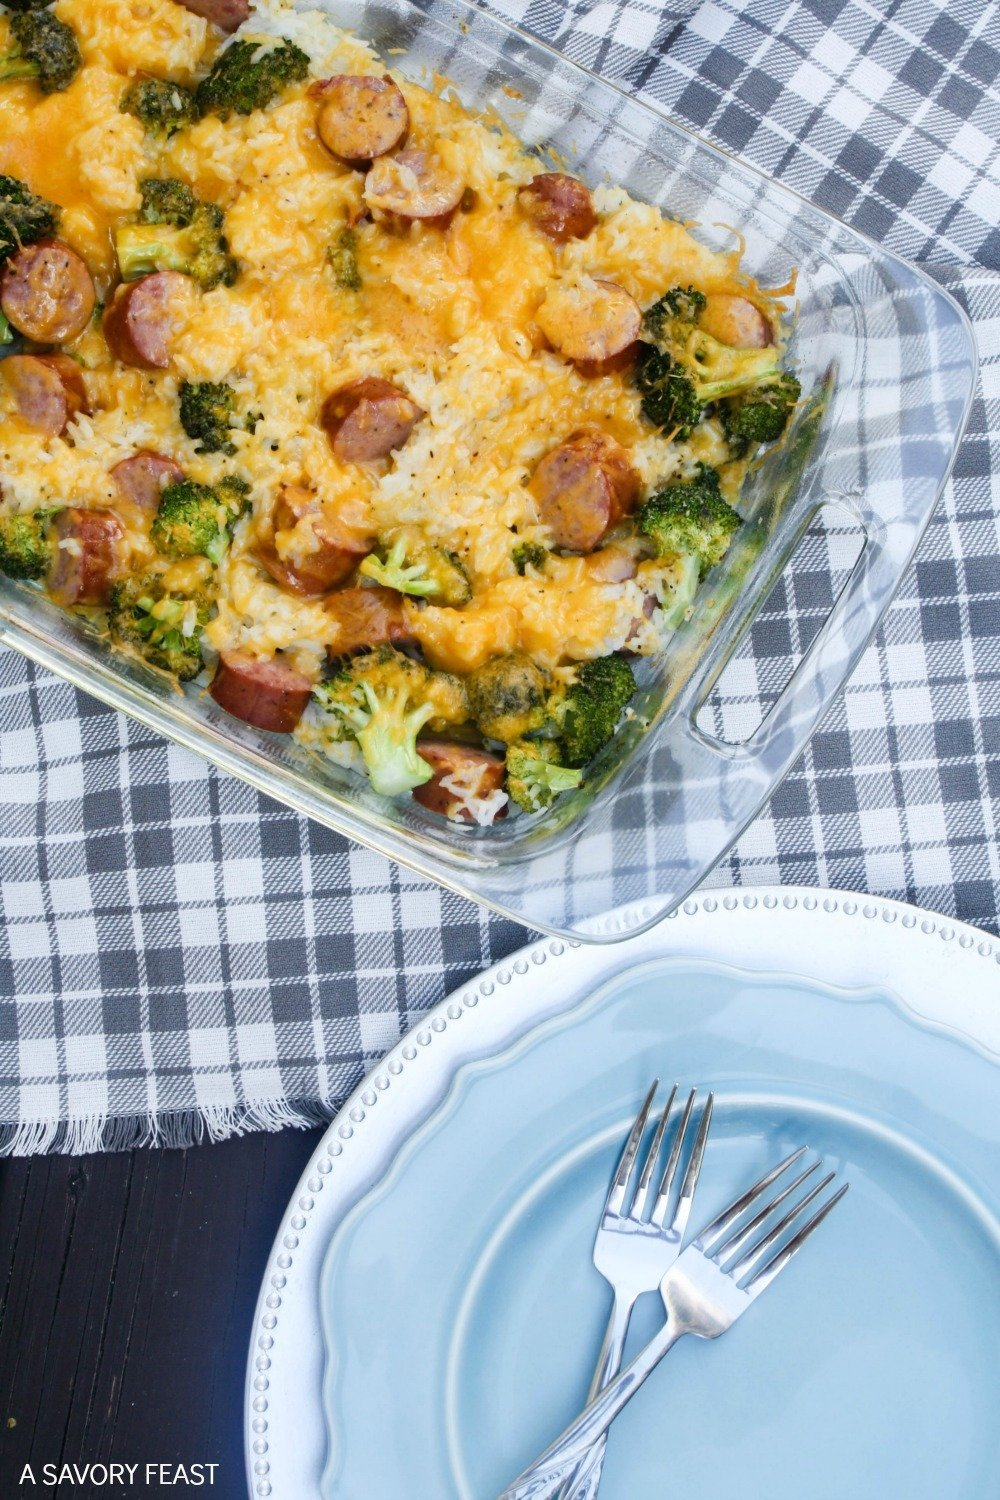 Make dinner easier with this Cheesy Broccoli, Sausage and Rice Casserole. Throw it together in minutes and have dinner on the table in about 30 minutes! This one dish dinner recipe is sure to be a hit with your family.